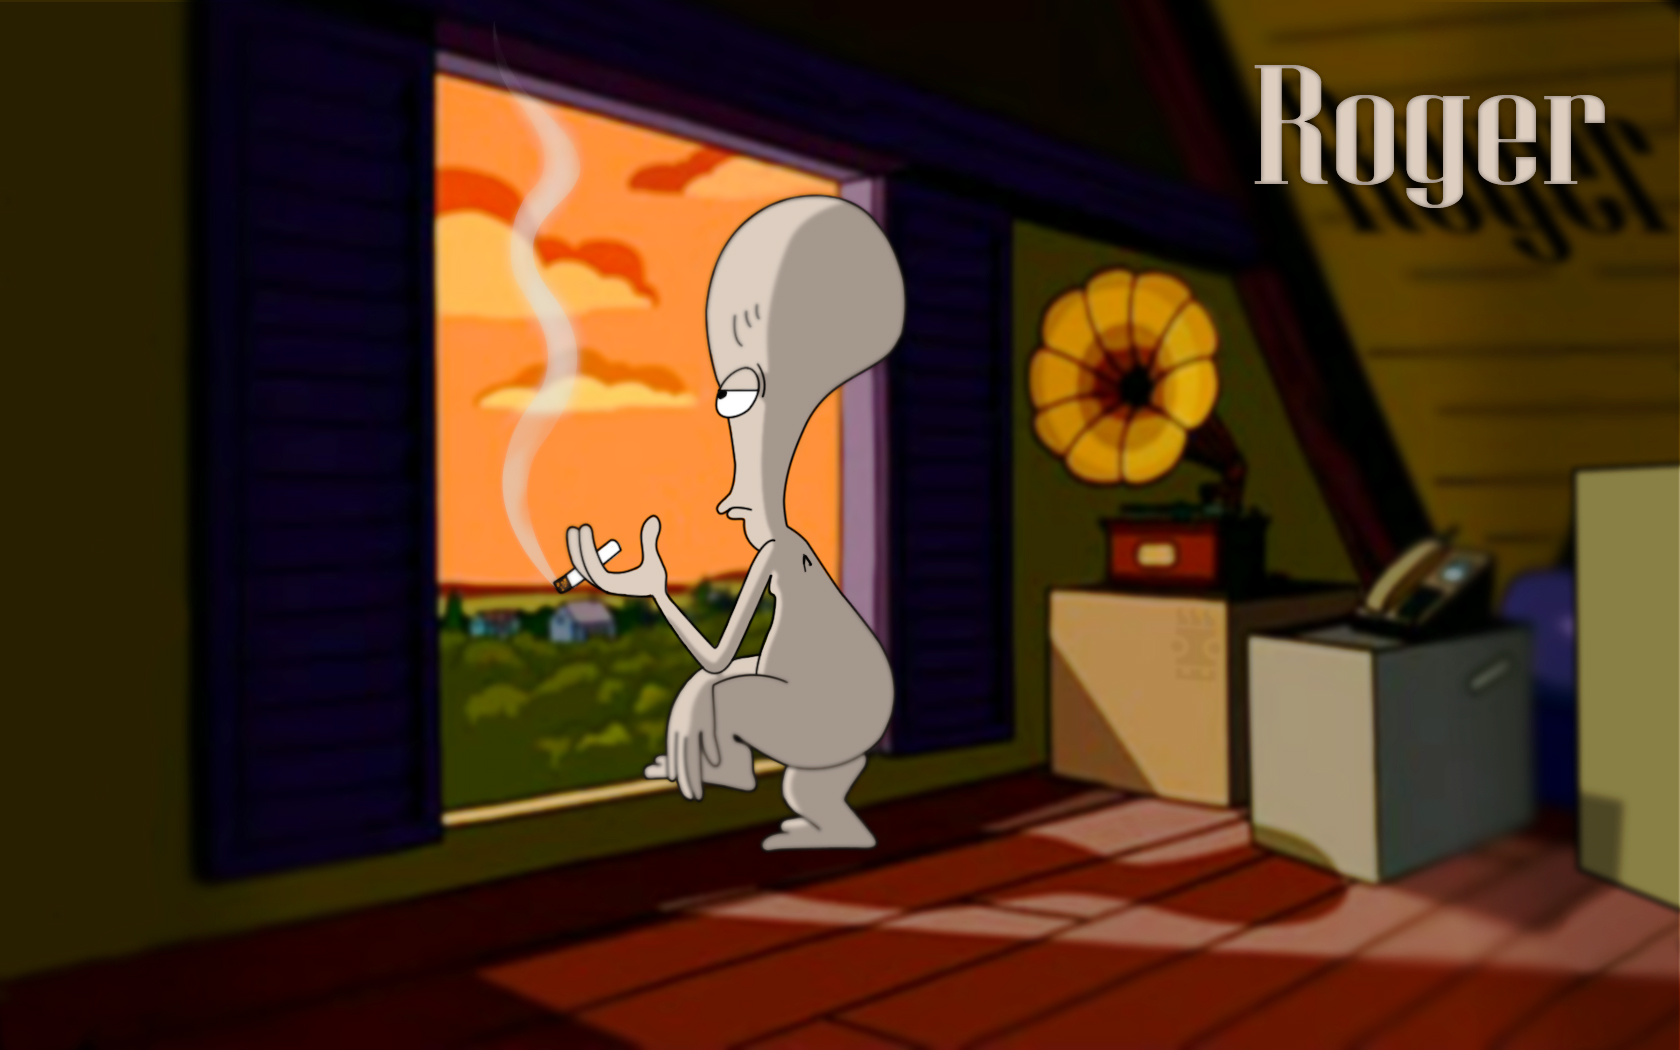 roger american dad wallpaper wallpapersafari